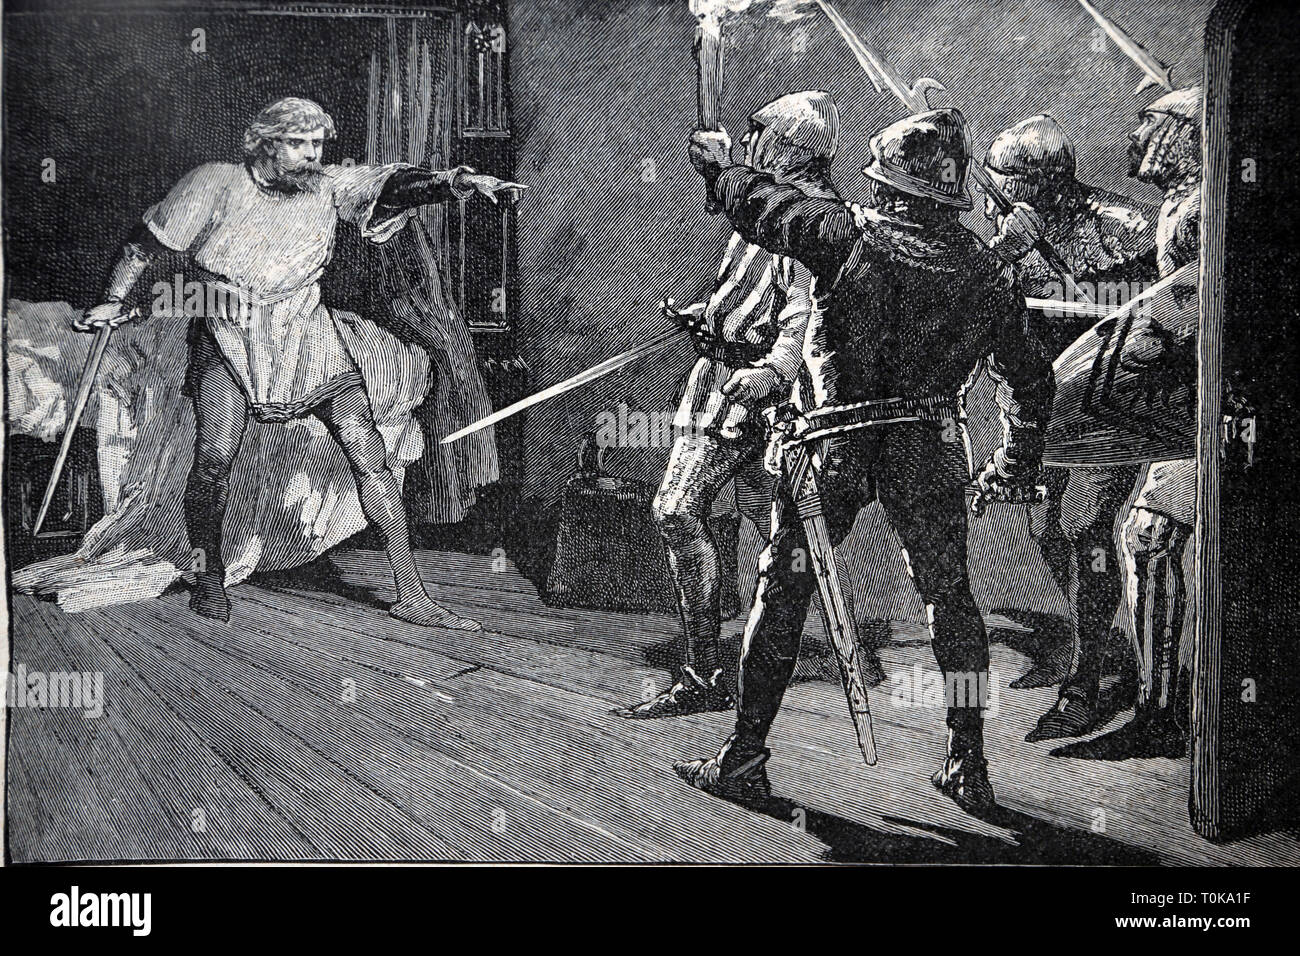 Illustration Of King Richard I being Assailed by Austrian Soldiers near Vienna in 1192 A.D from the book Cassell's History of England - Stock Image